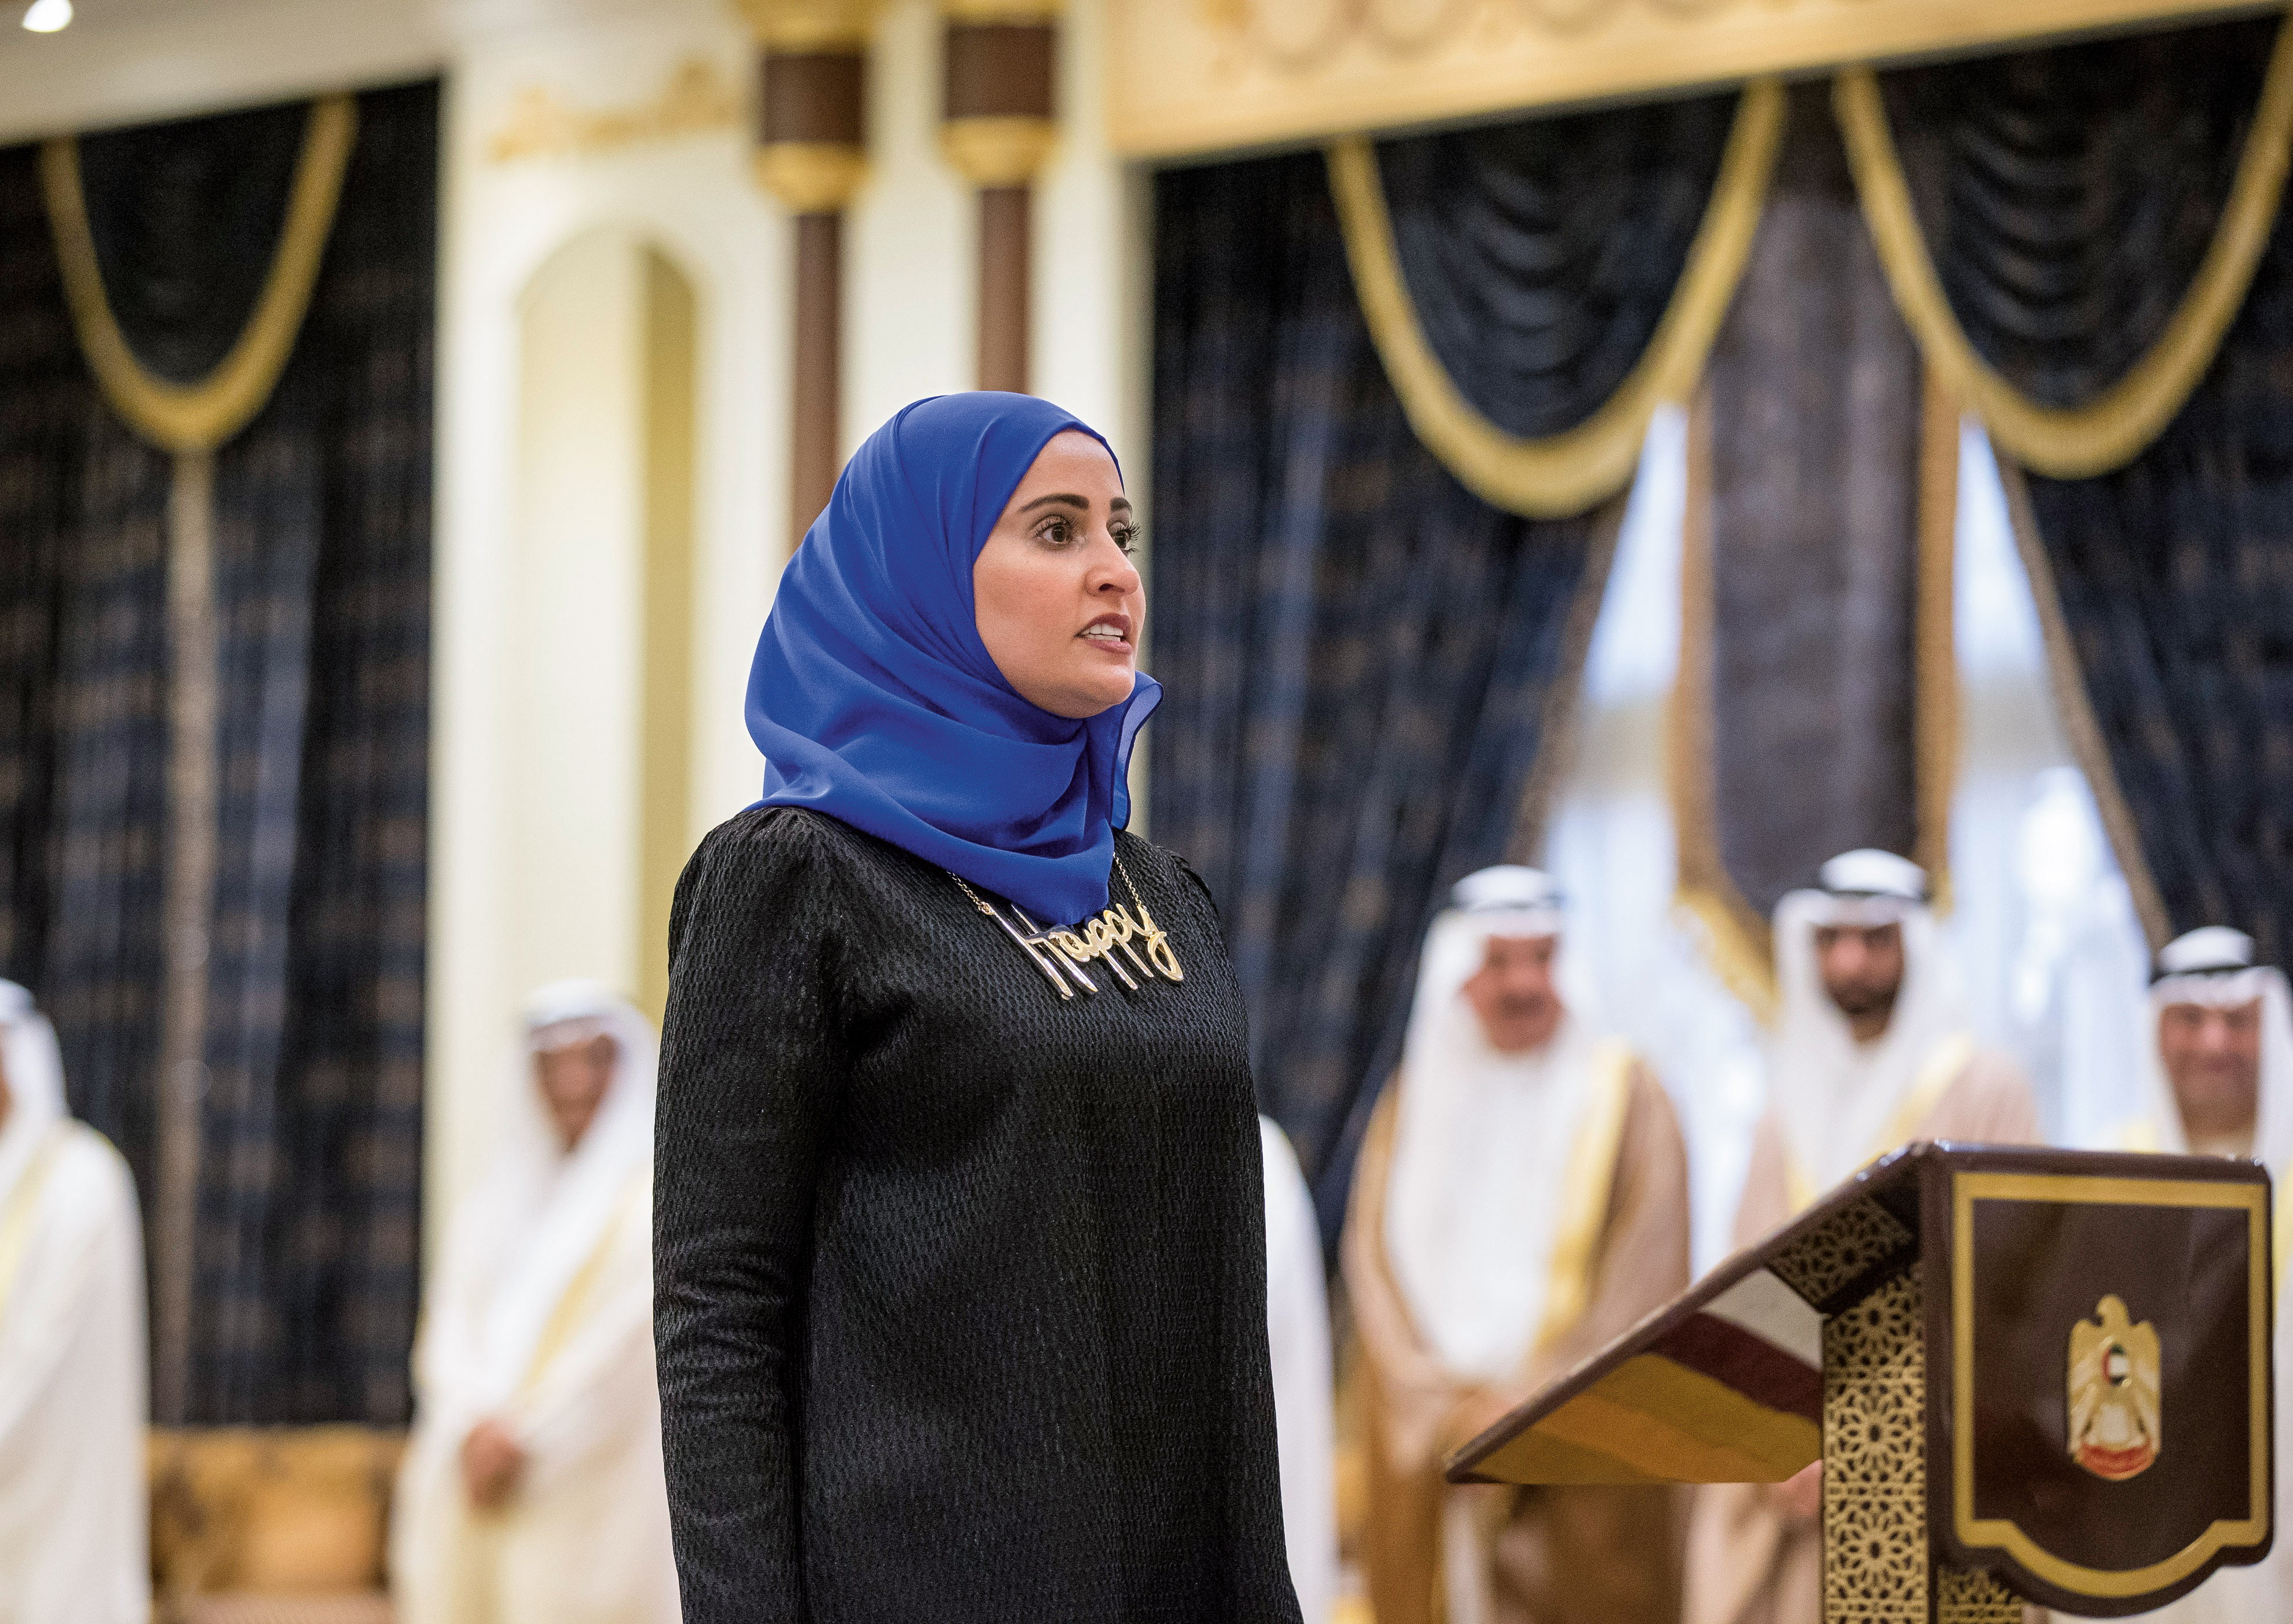 (HEADER)-Ohood-Al-Roumi,-UAE-Minister-of-State-for-Happiness,-giving-an-oath,-2016